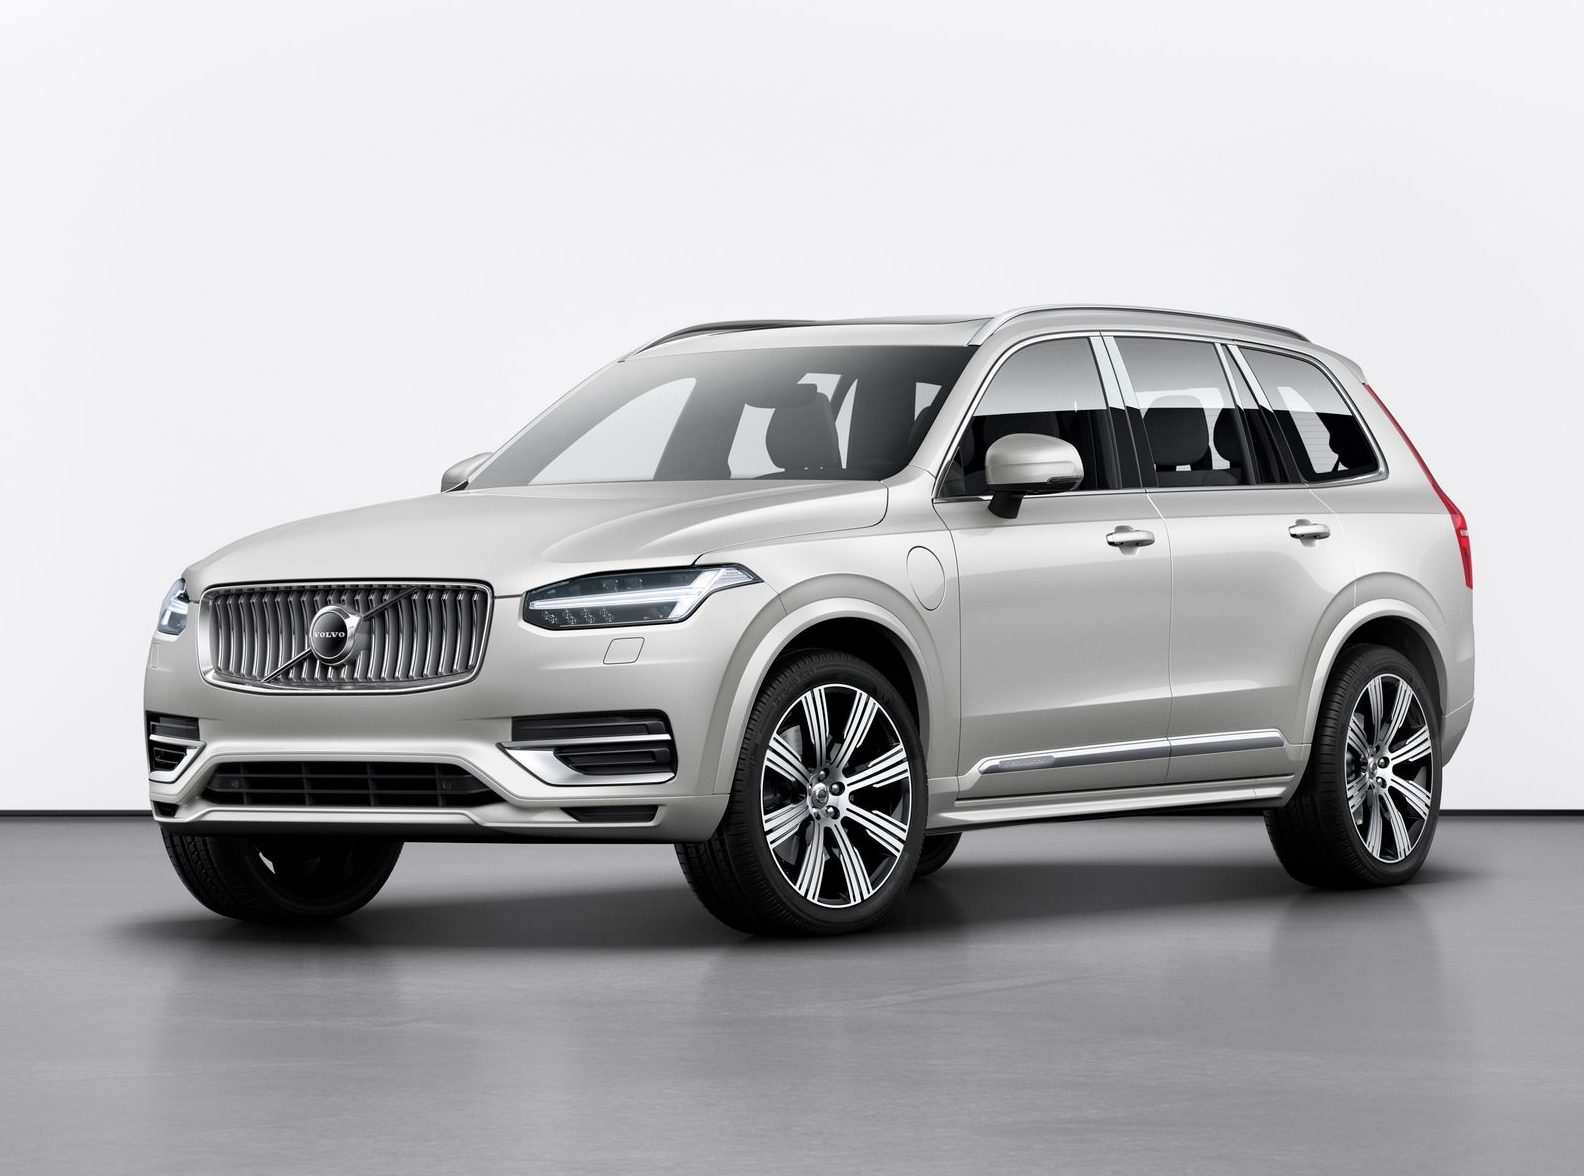 57 The Volvo To Go Electric By 2020 Speed Test by Volvo To Go Electric By 2020